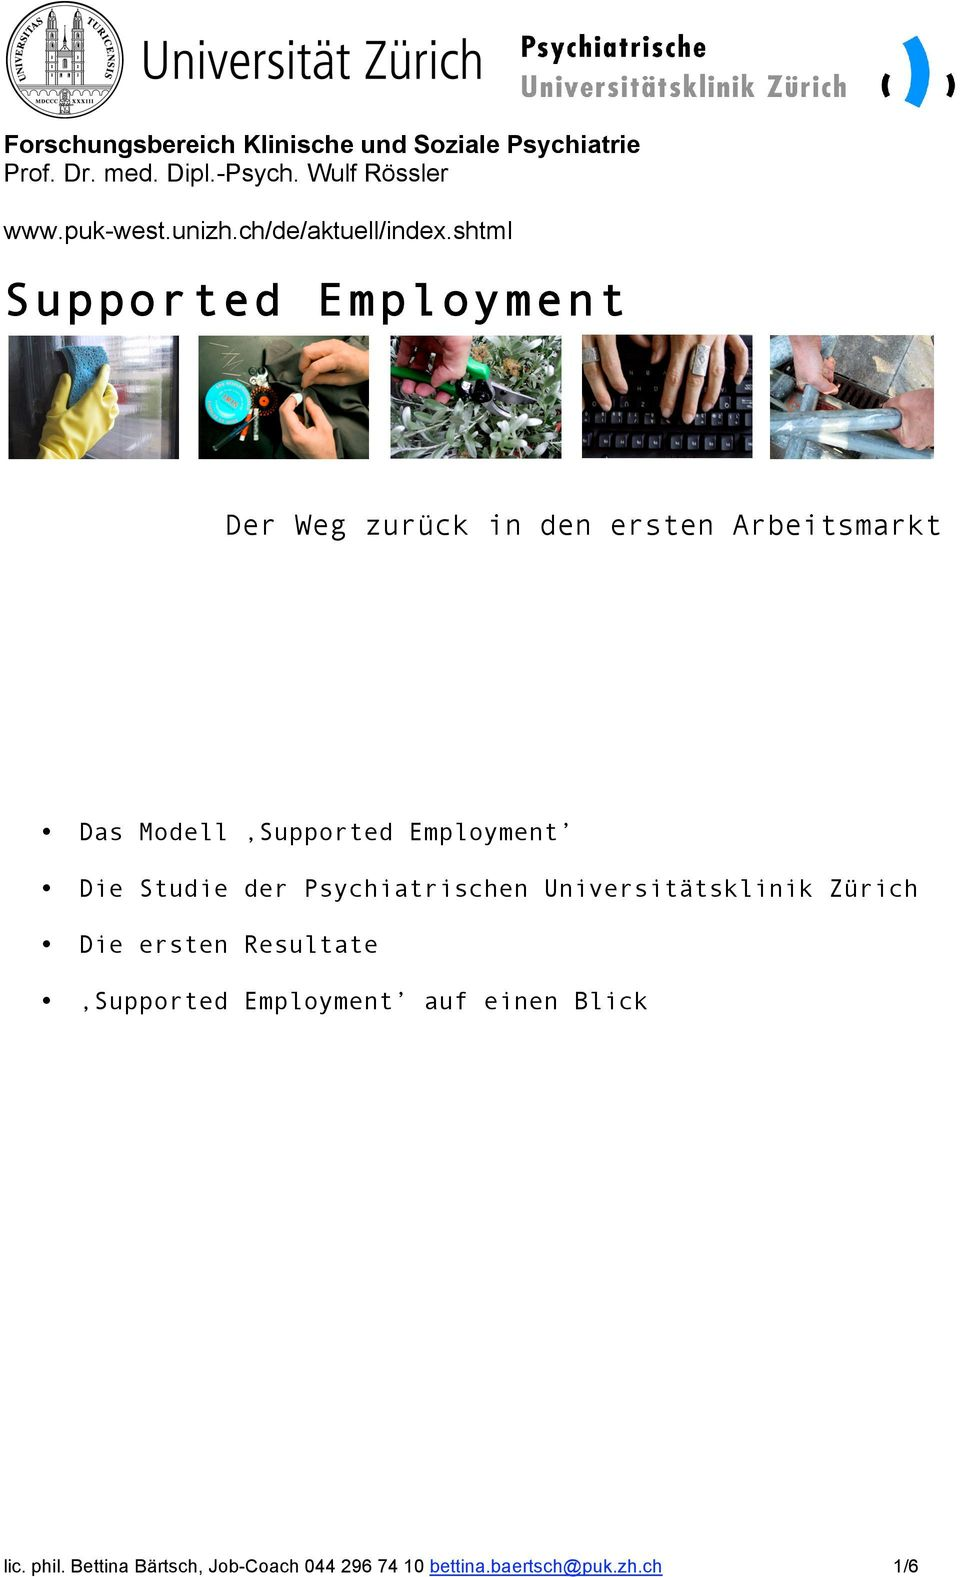 shtml Supported Employment Das Modell Supported Employment Die Studie der Psychiatrischen